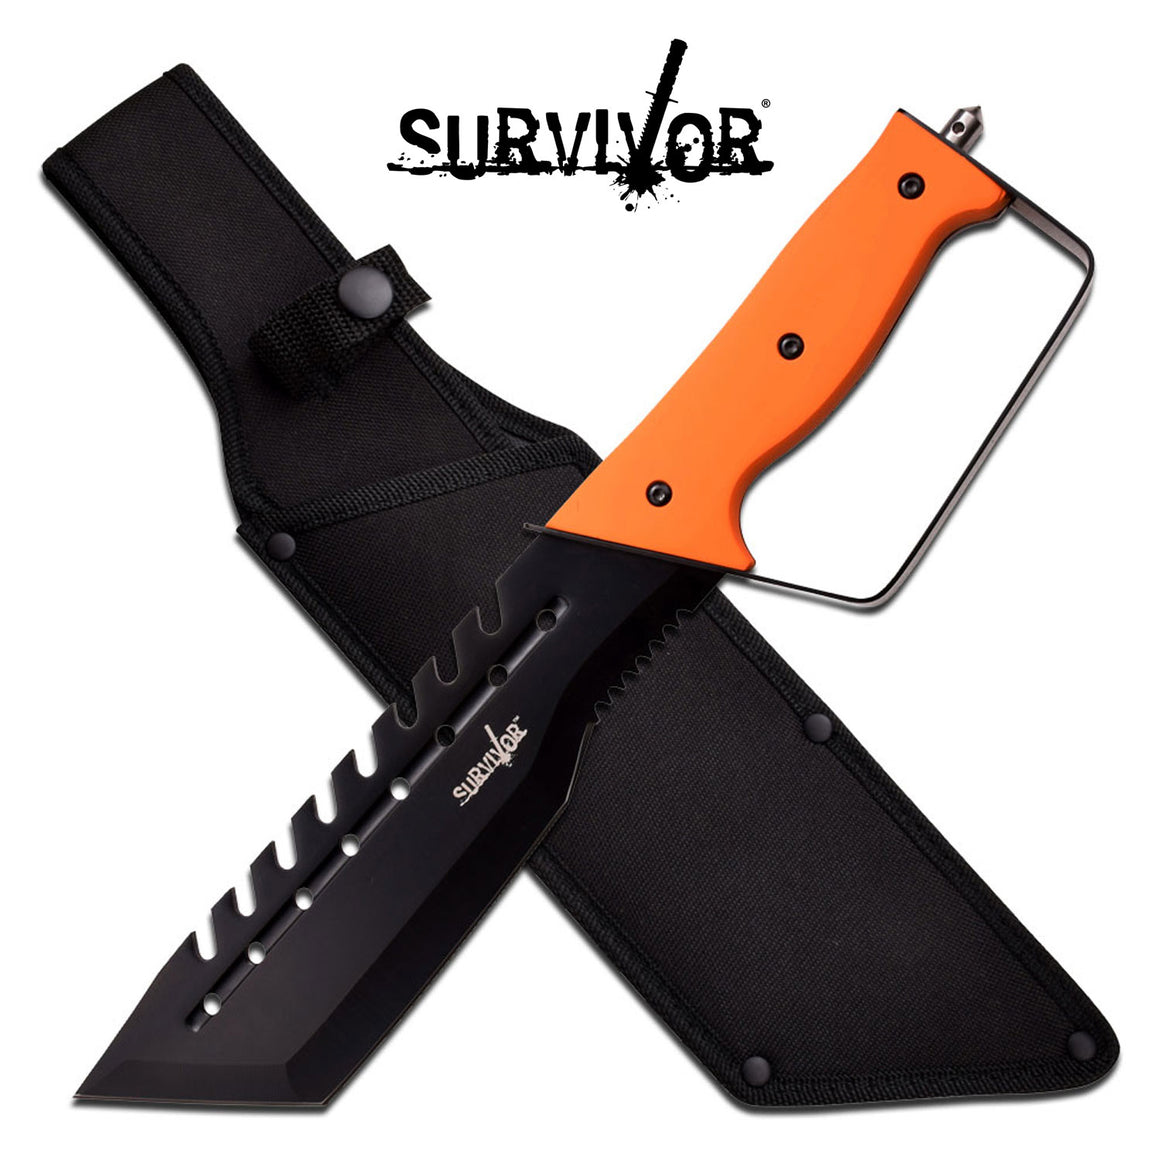 Survivor HK-775OR Fixed Blade Knife